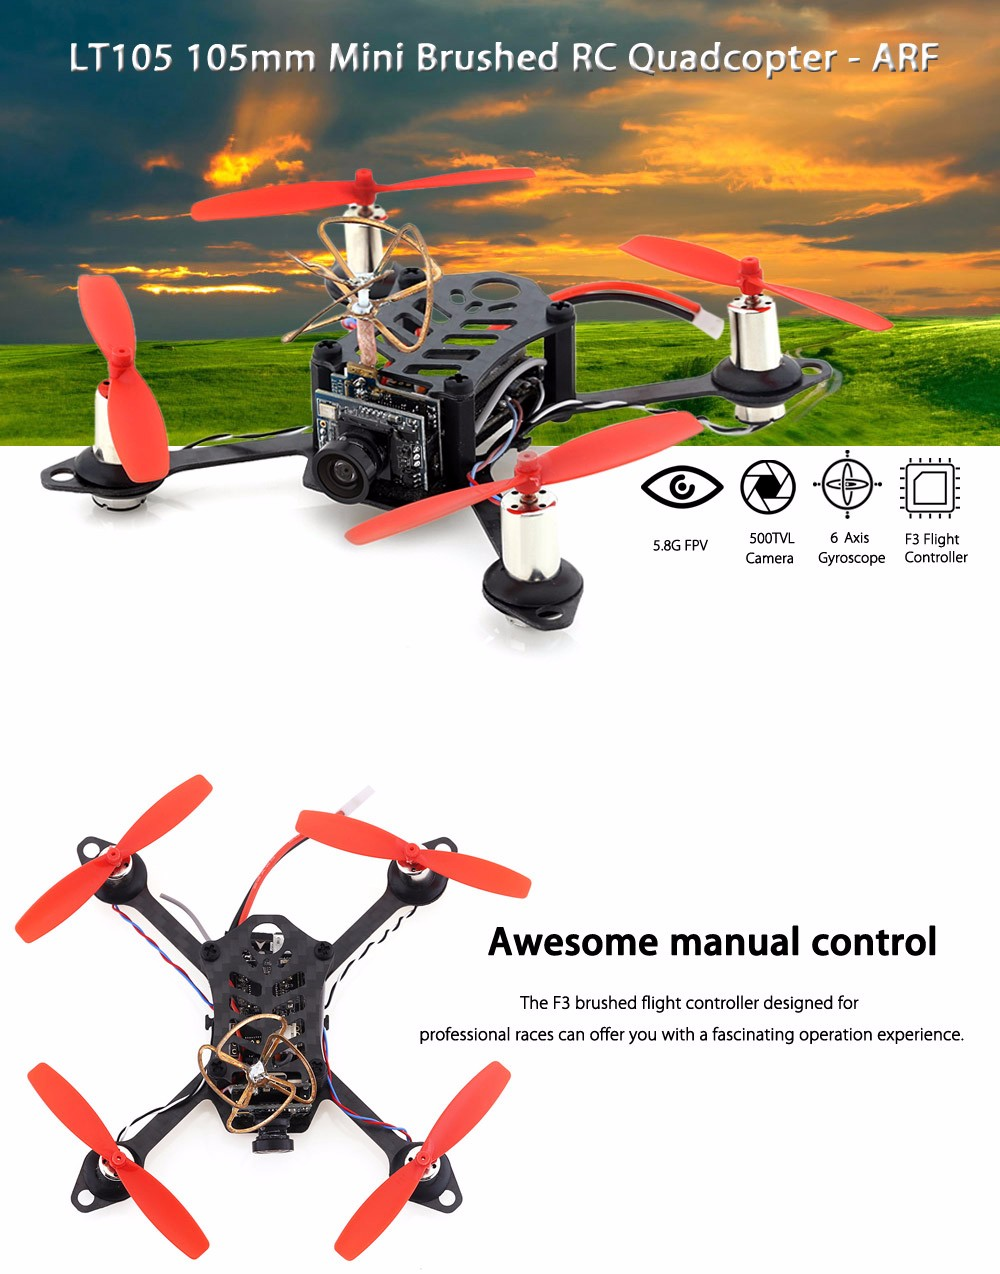 LT105 105mm 5.8G FPV 500TVL 6 Axis Gyro Mini Indoor RC Racing Brushed Quadcopter - ARF